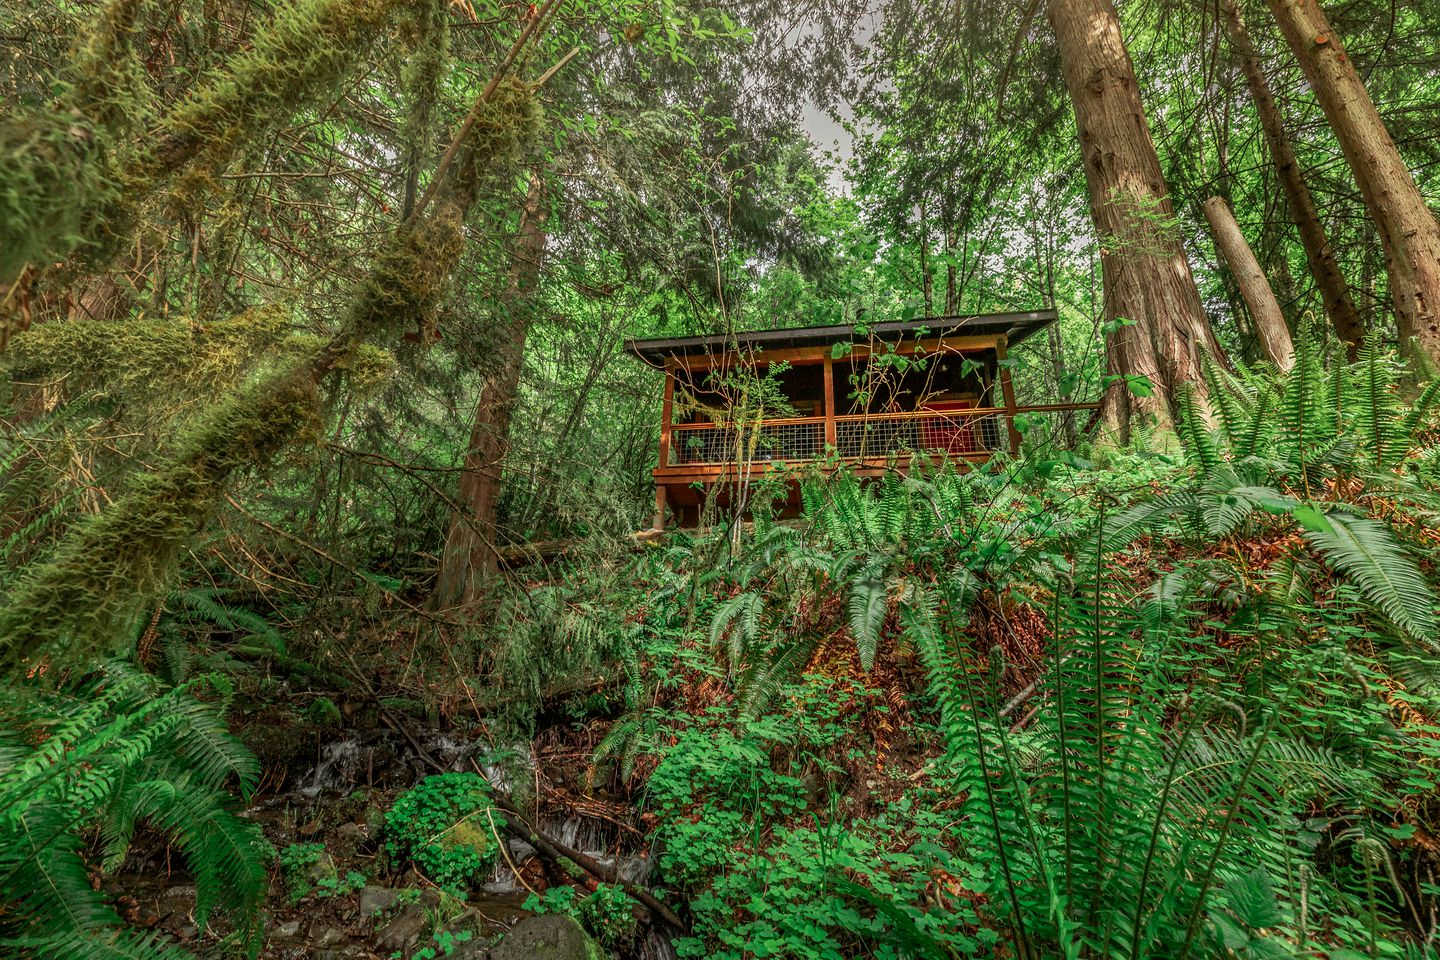 The cabin sitting in a dense forest with ferns